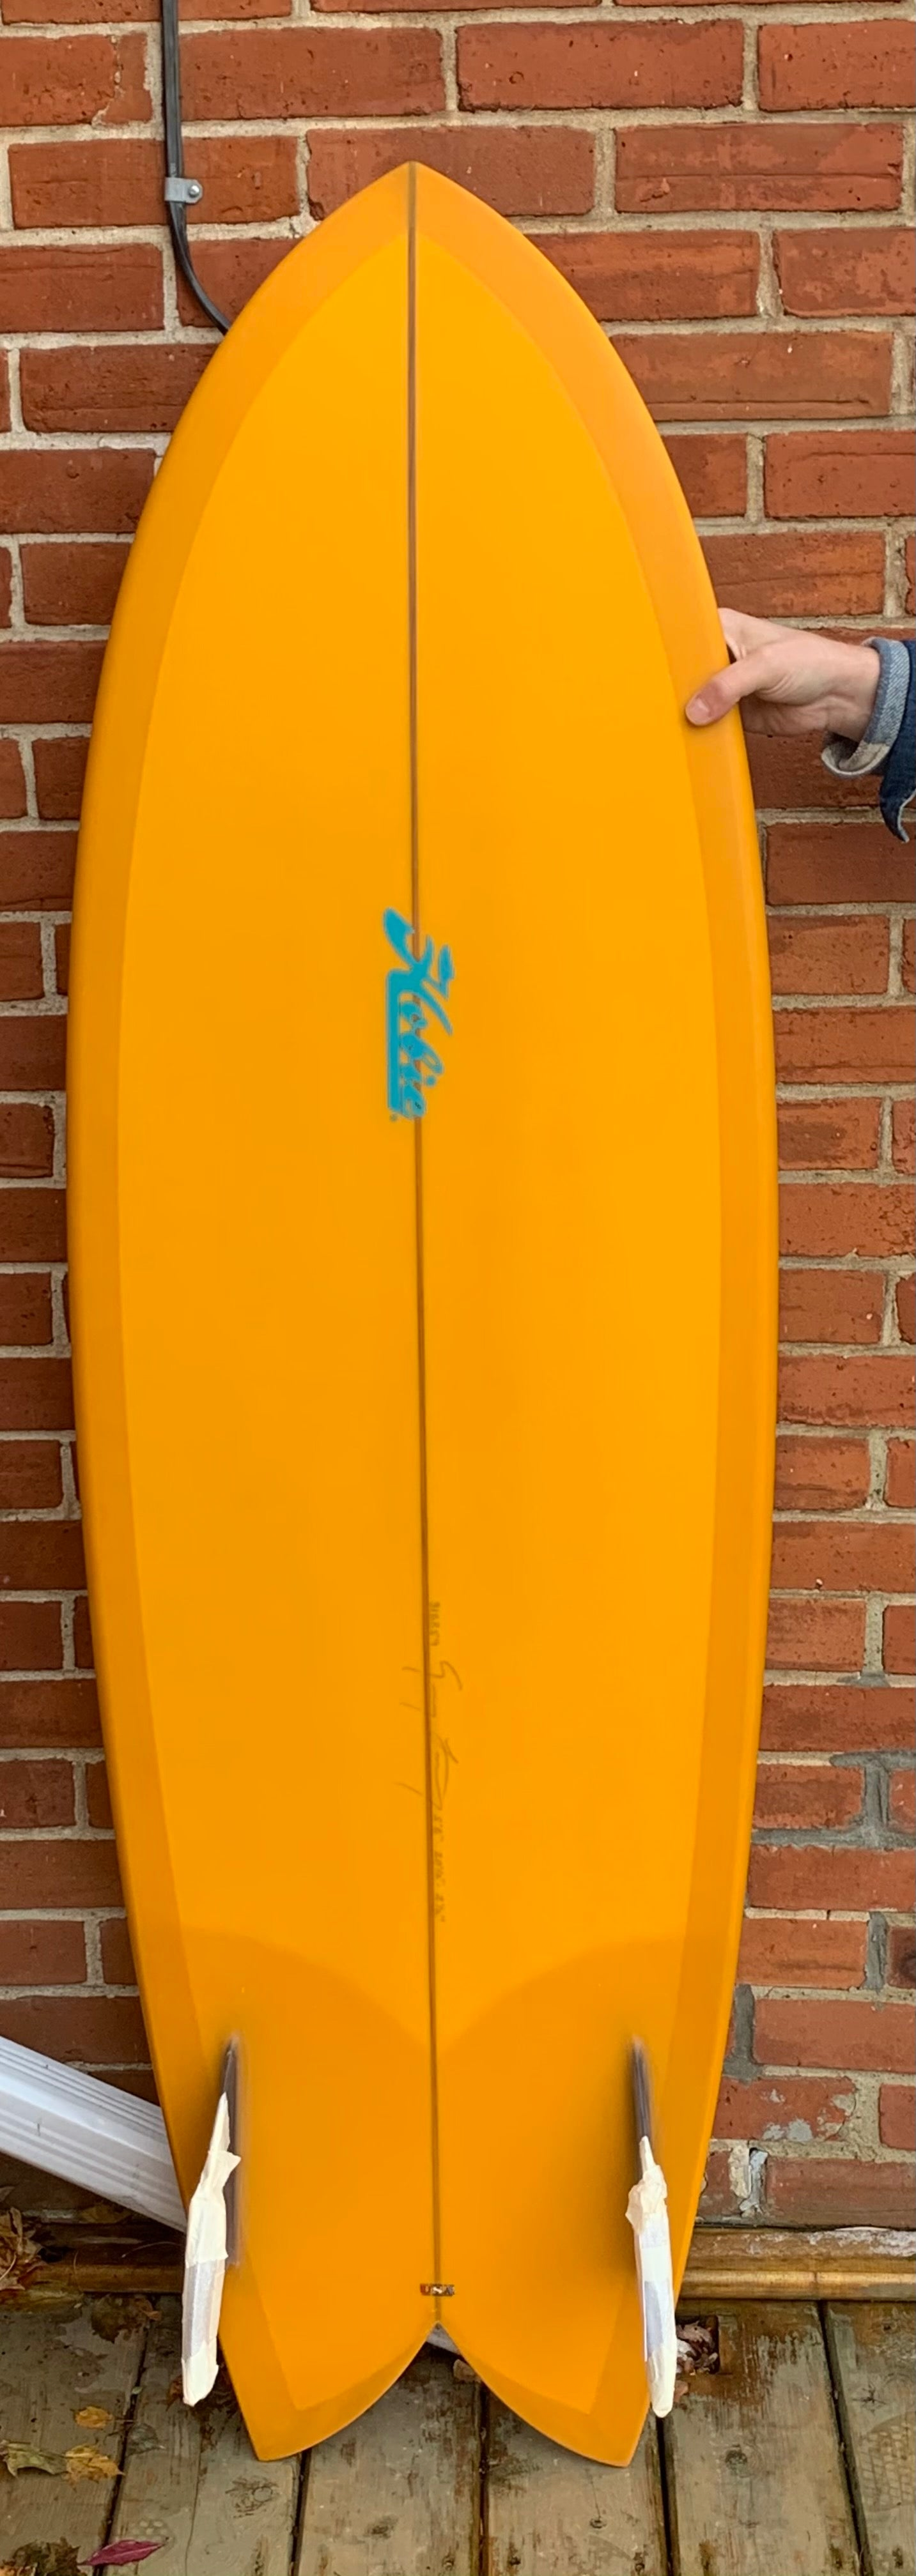 5'8 HOBIE CIRCA FISH - YELLOW